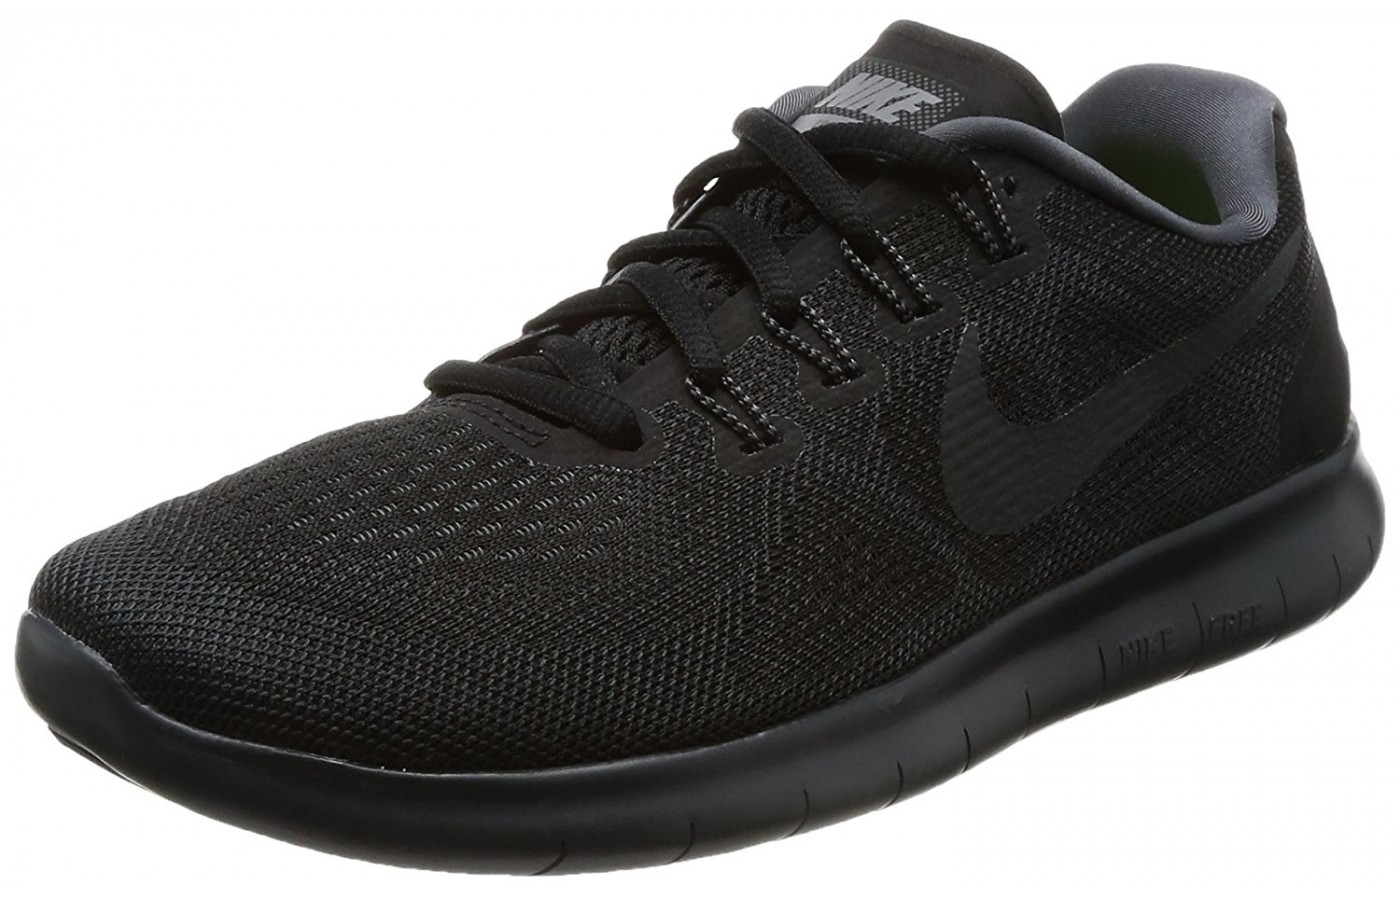 Nike Free Rn 2017 running shoe in black